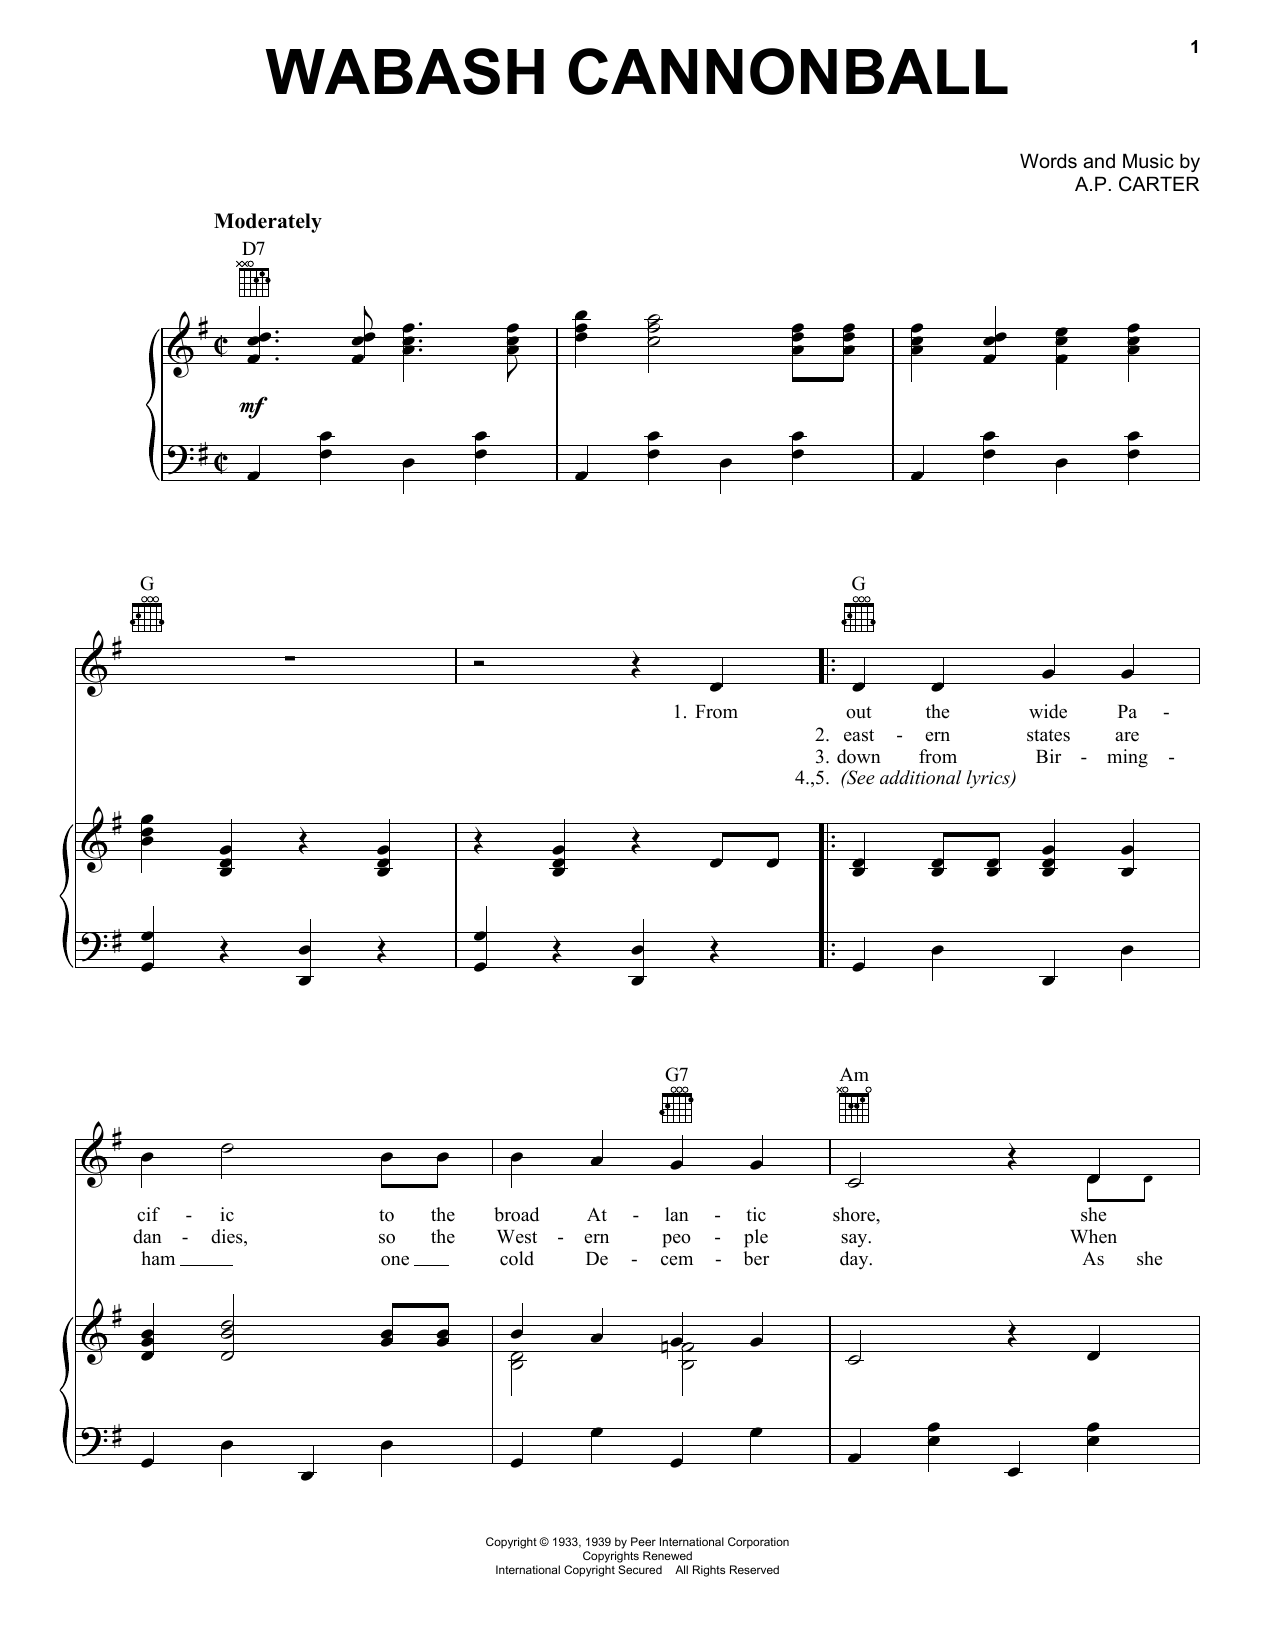 Roy Acuff Wabash Cannonball sheet music notes and chords. Download Printable PDF.